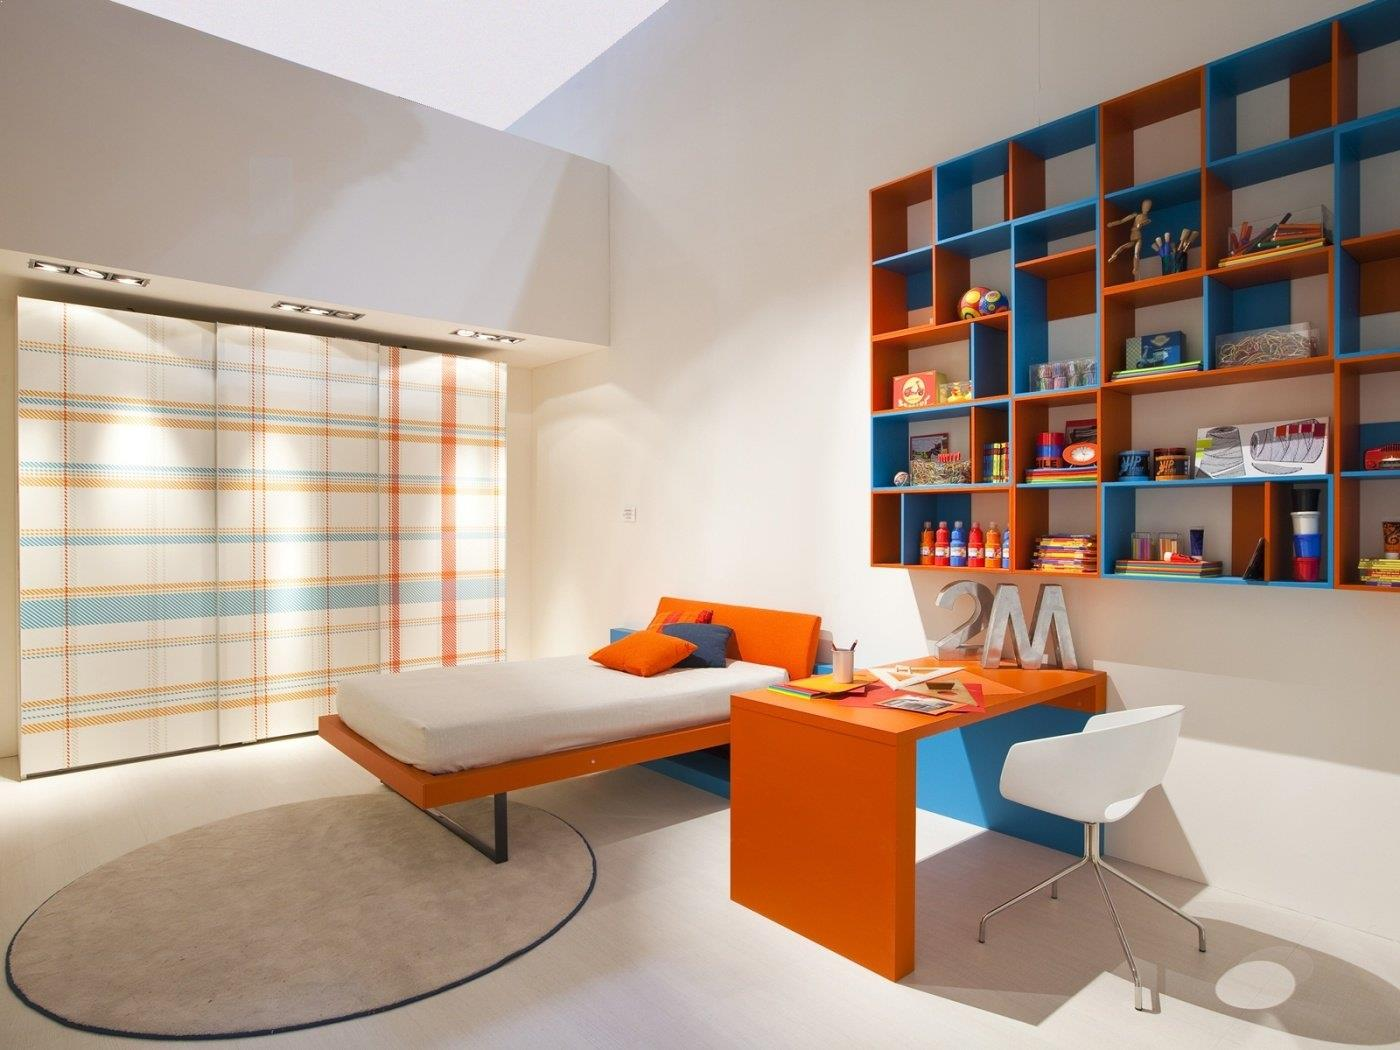 34-mibilier-inteligent-design-interior-smart